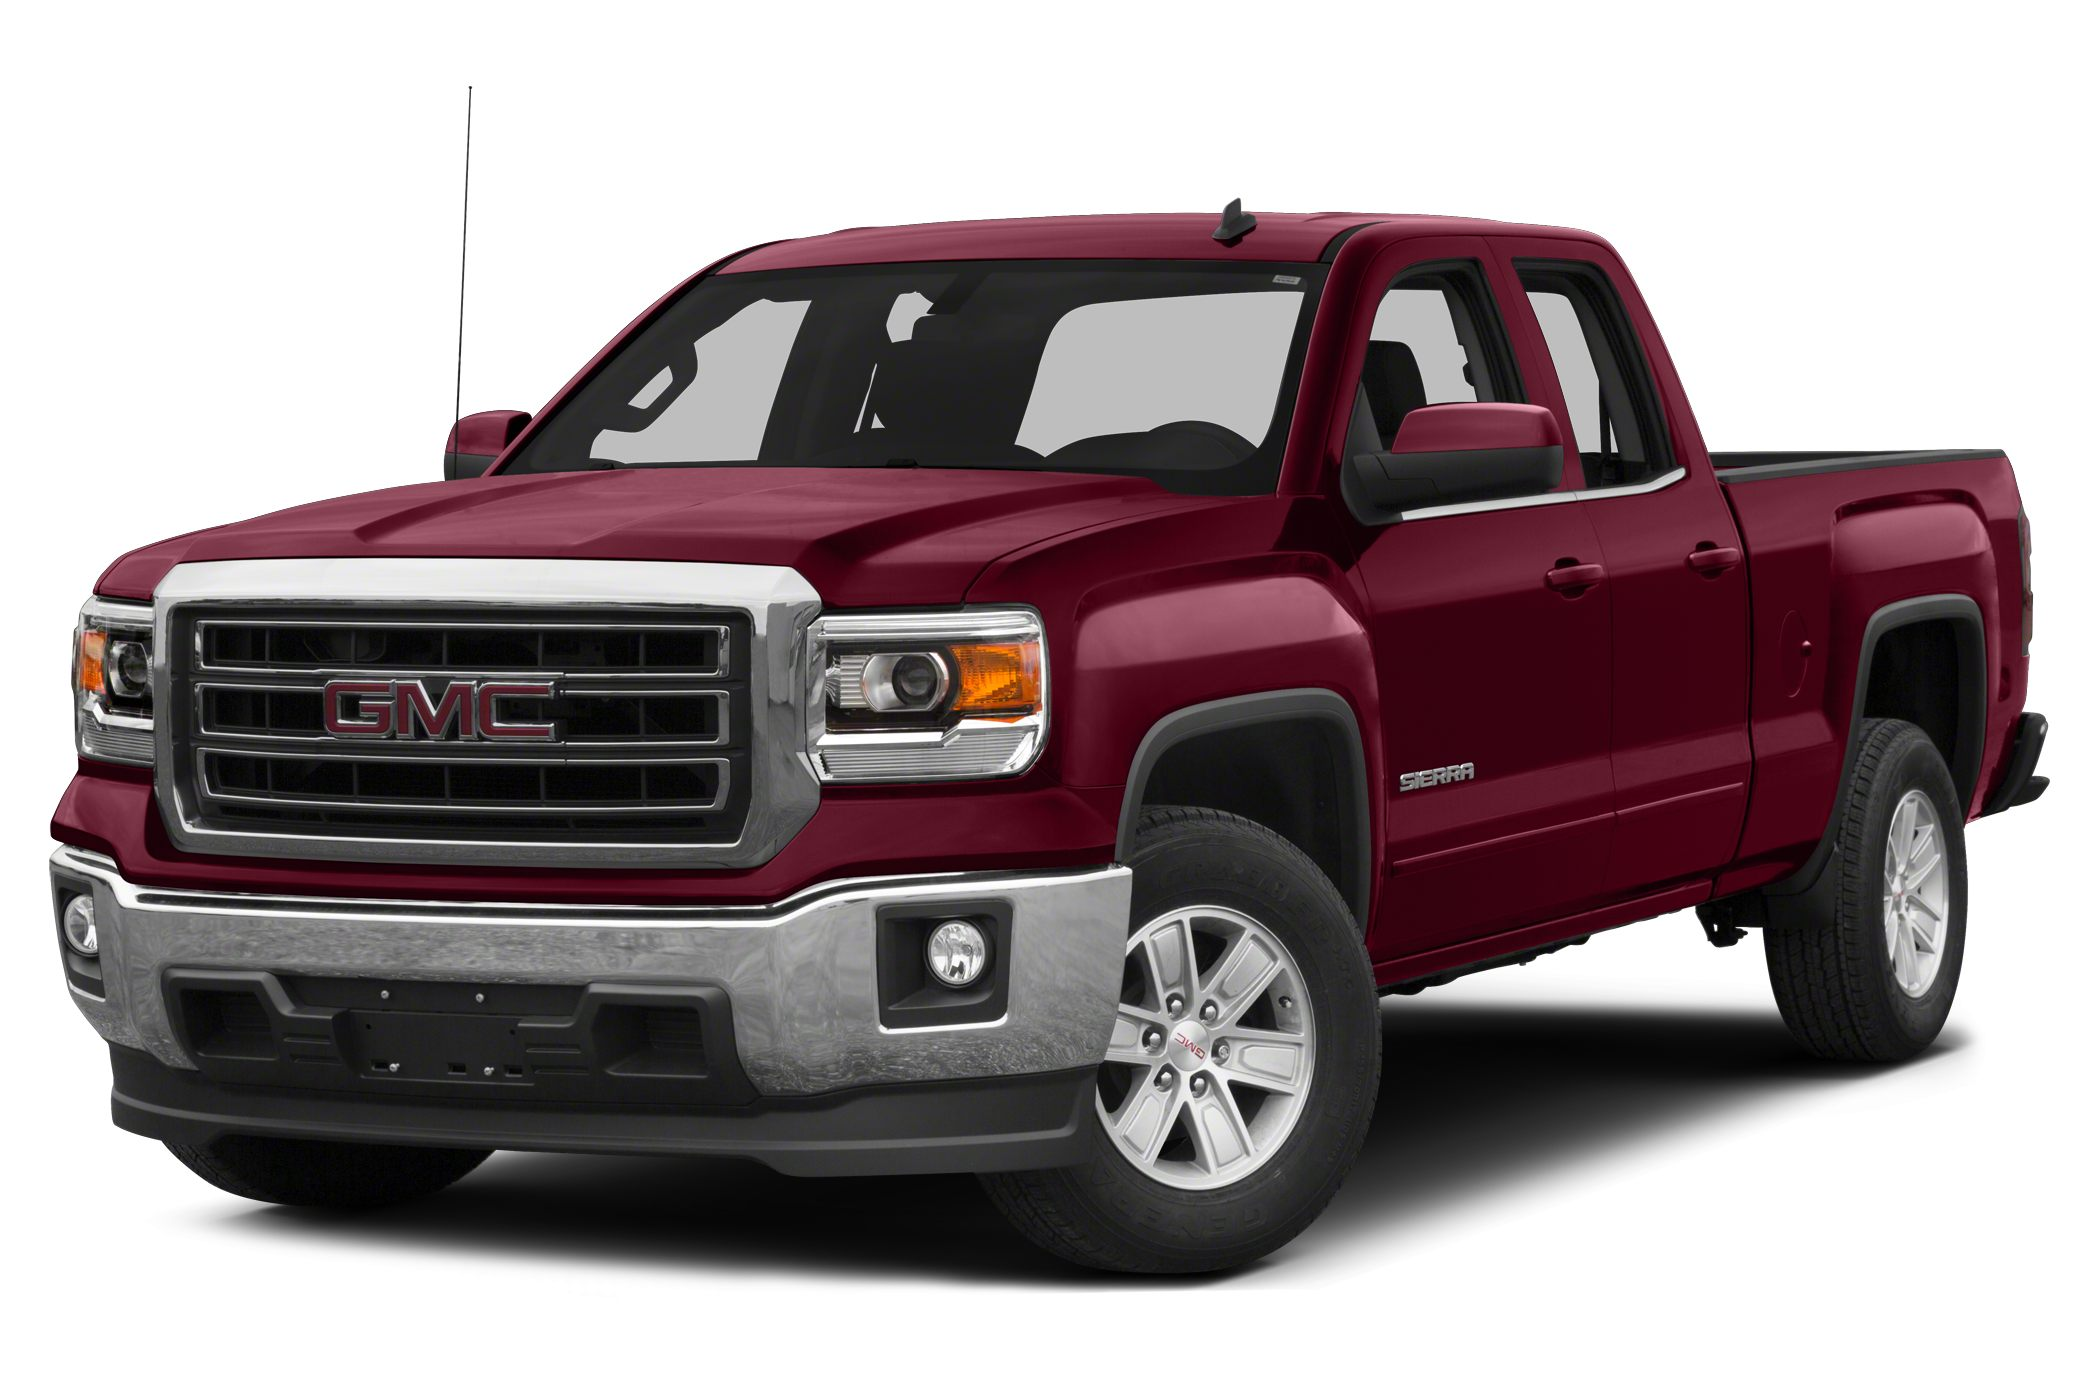 2014 GMC Sierra 1500 Base Regular Cab Pickup for sale in Anderson for $27,560 with 0 miles.